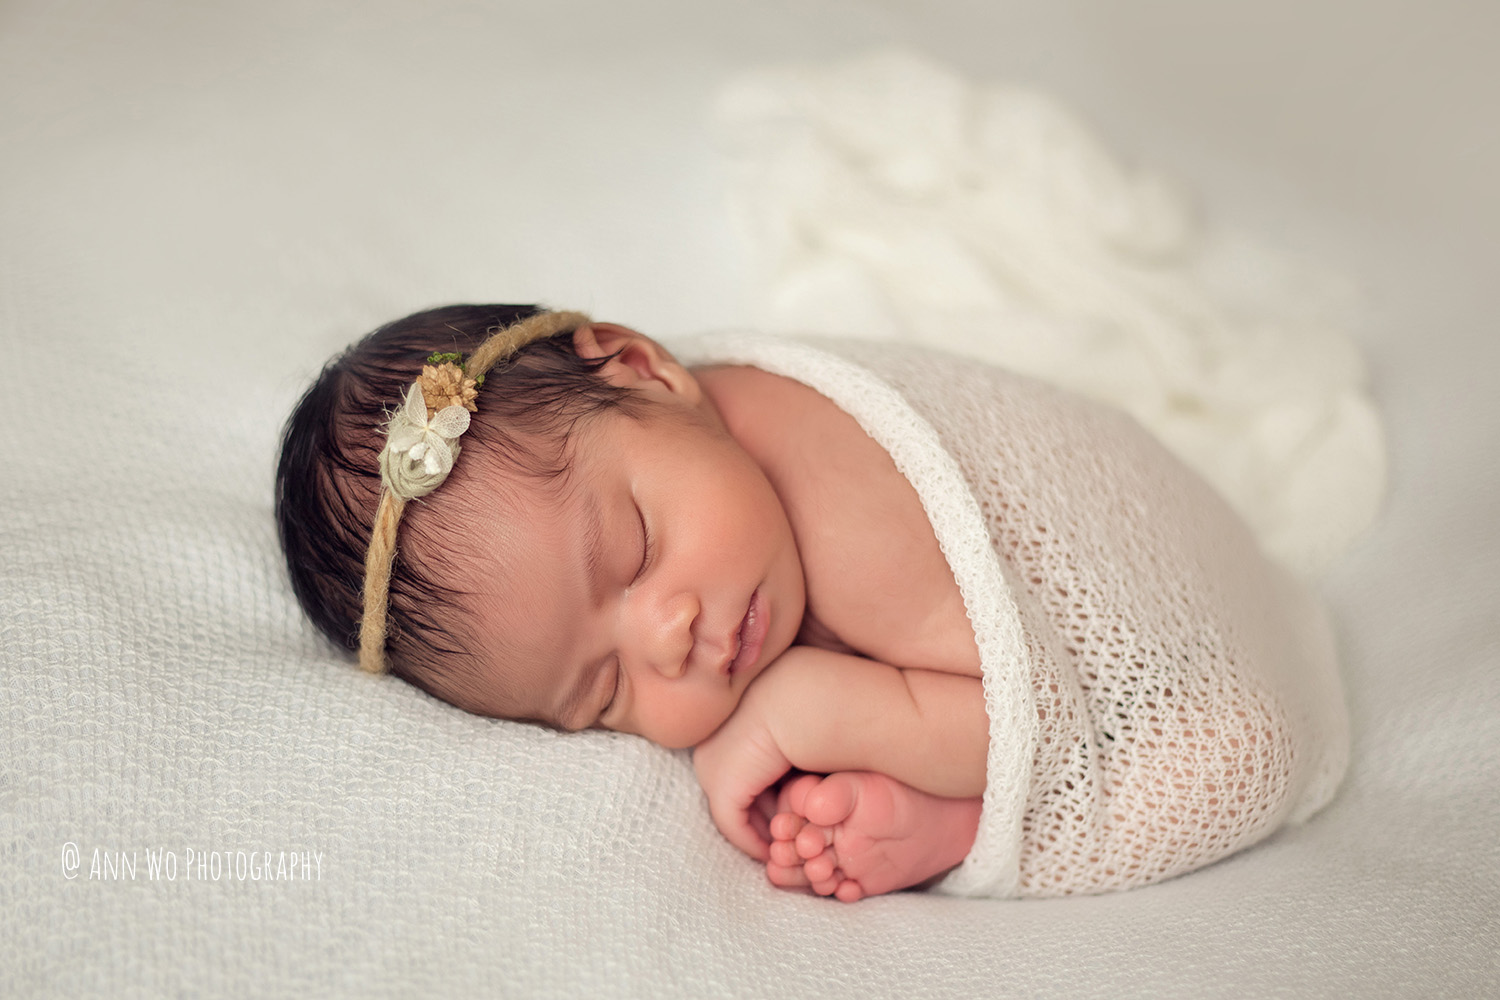 taco pose newborn baby wrapped ann wo photography london uk